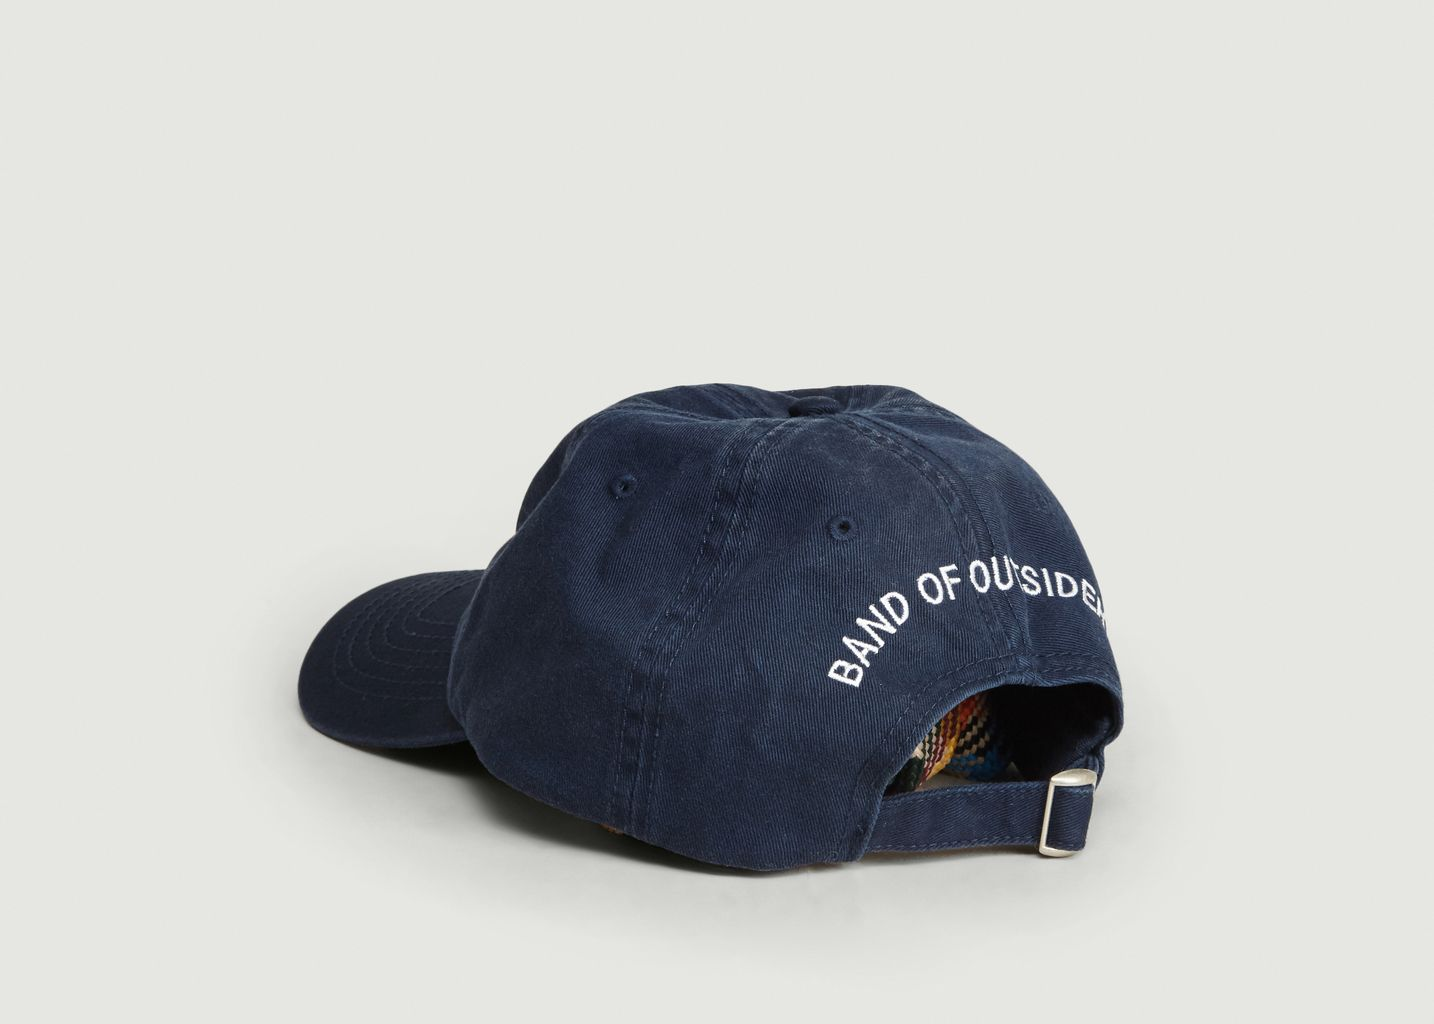 Casquette B logo brodée  - Band Of Outsiders